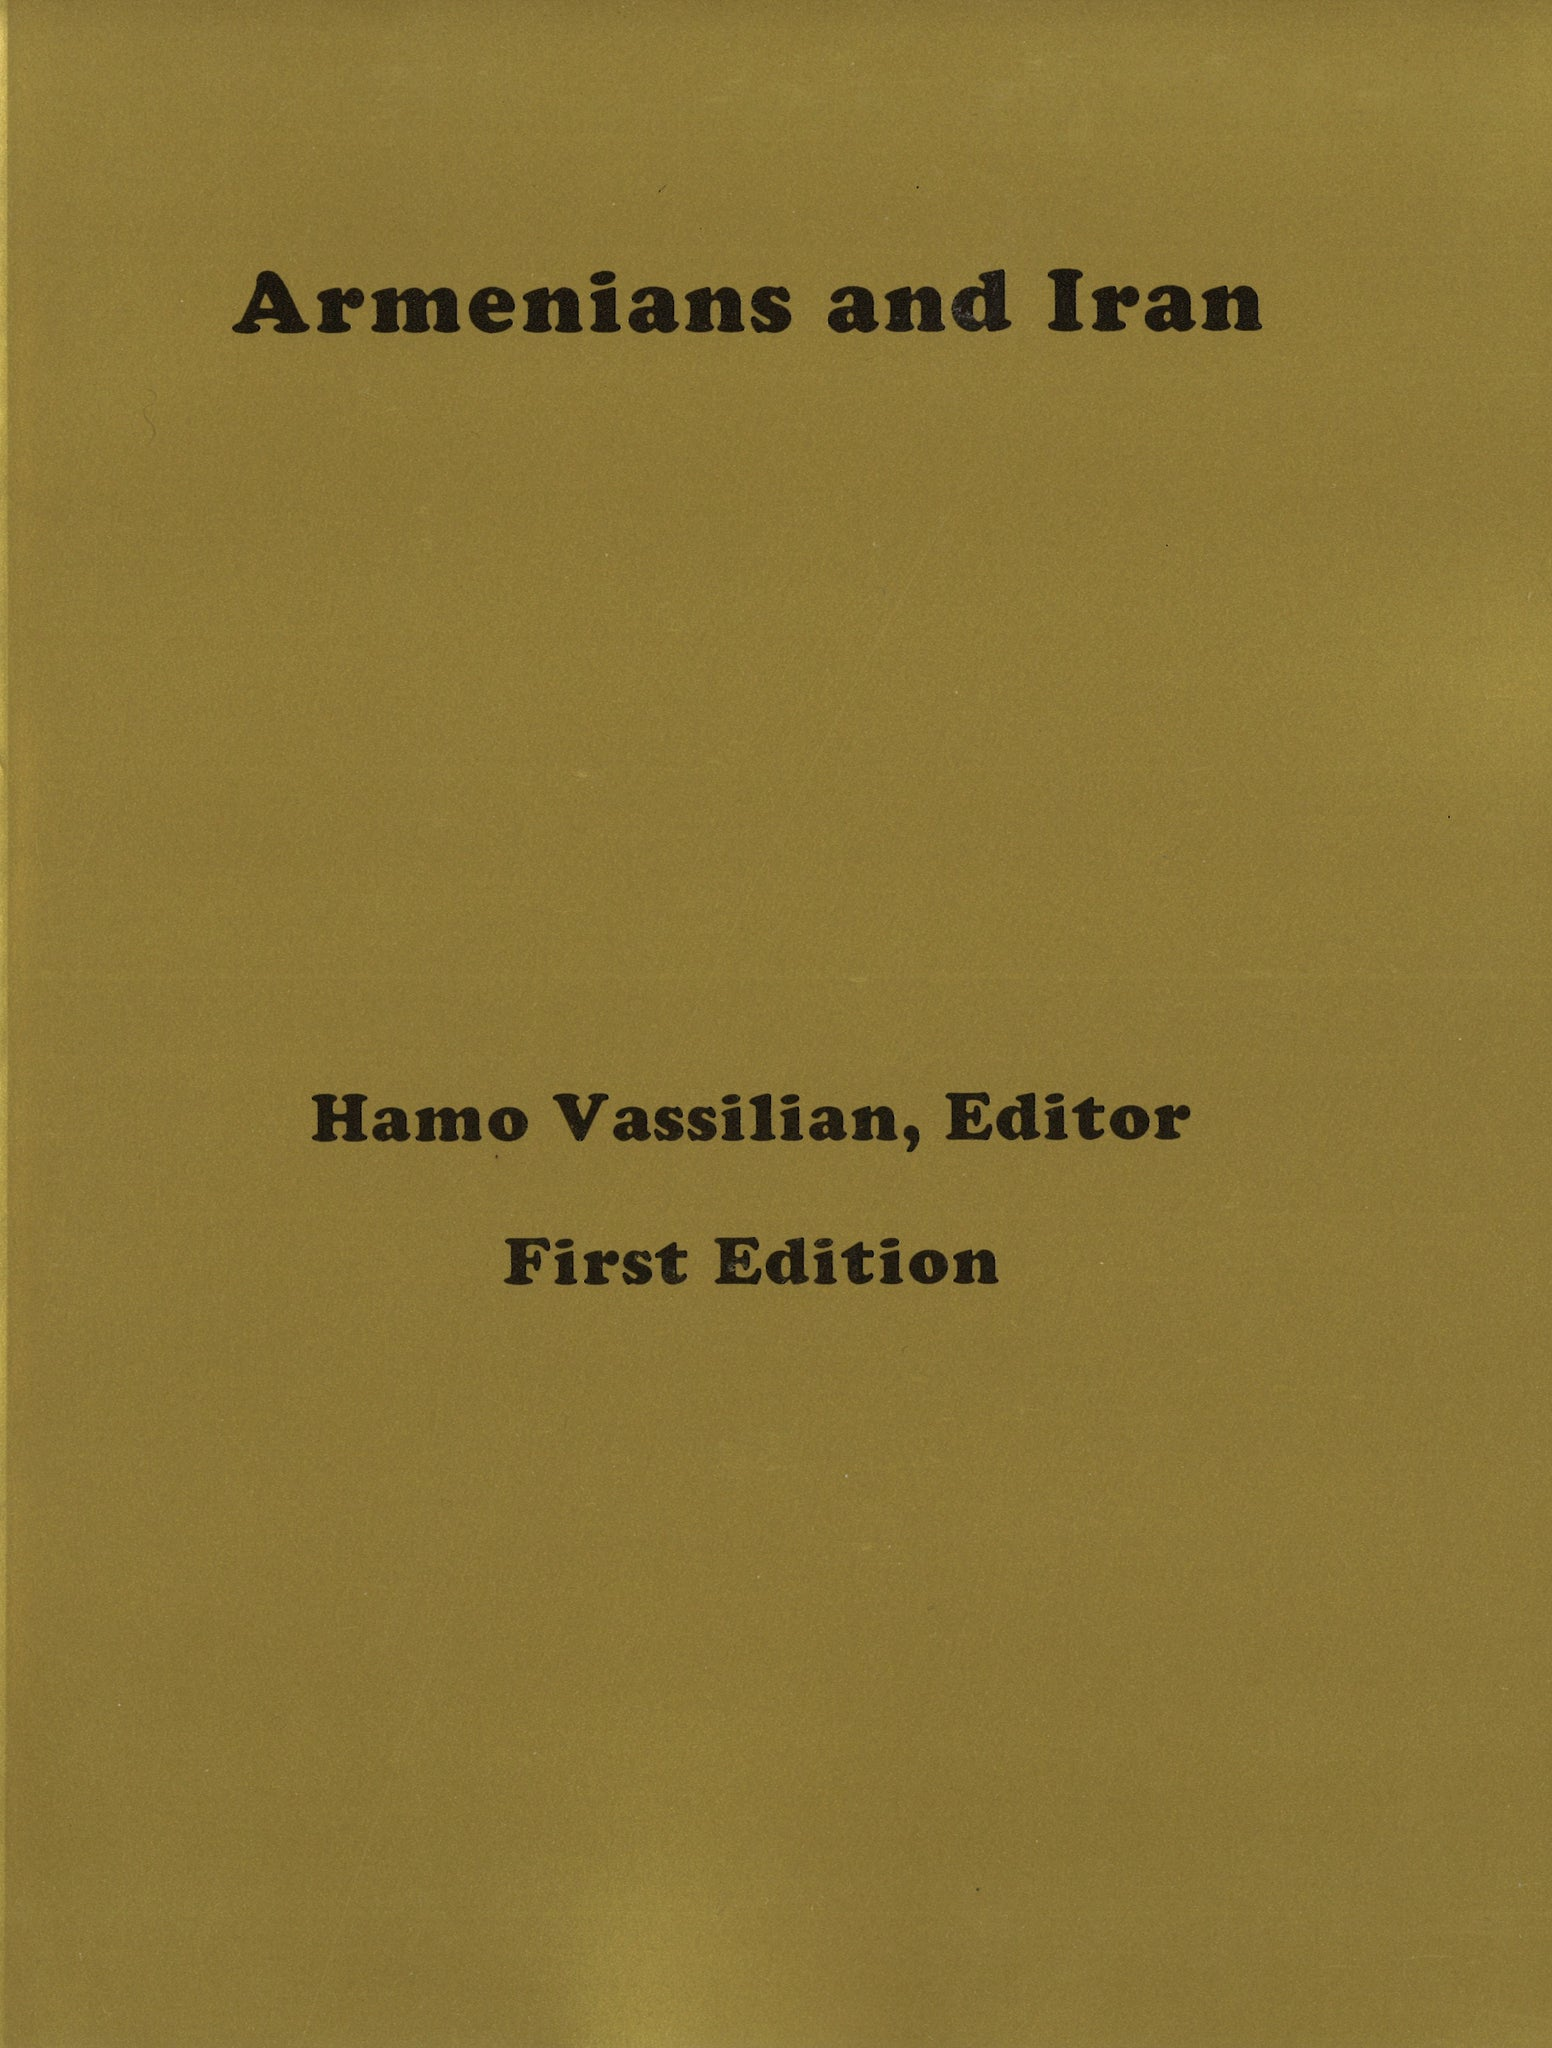 ARMENIANS AND IRAN